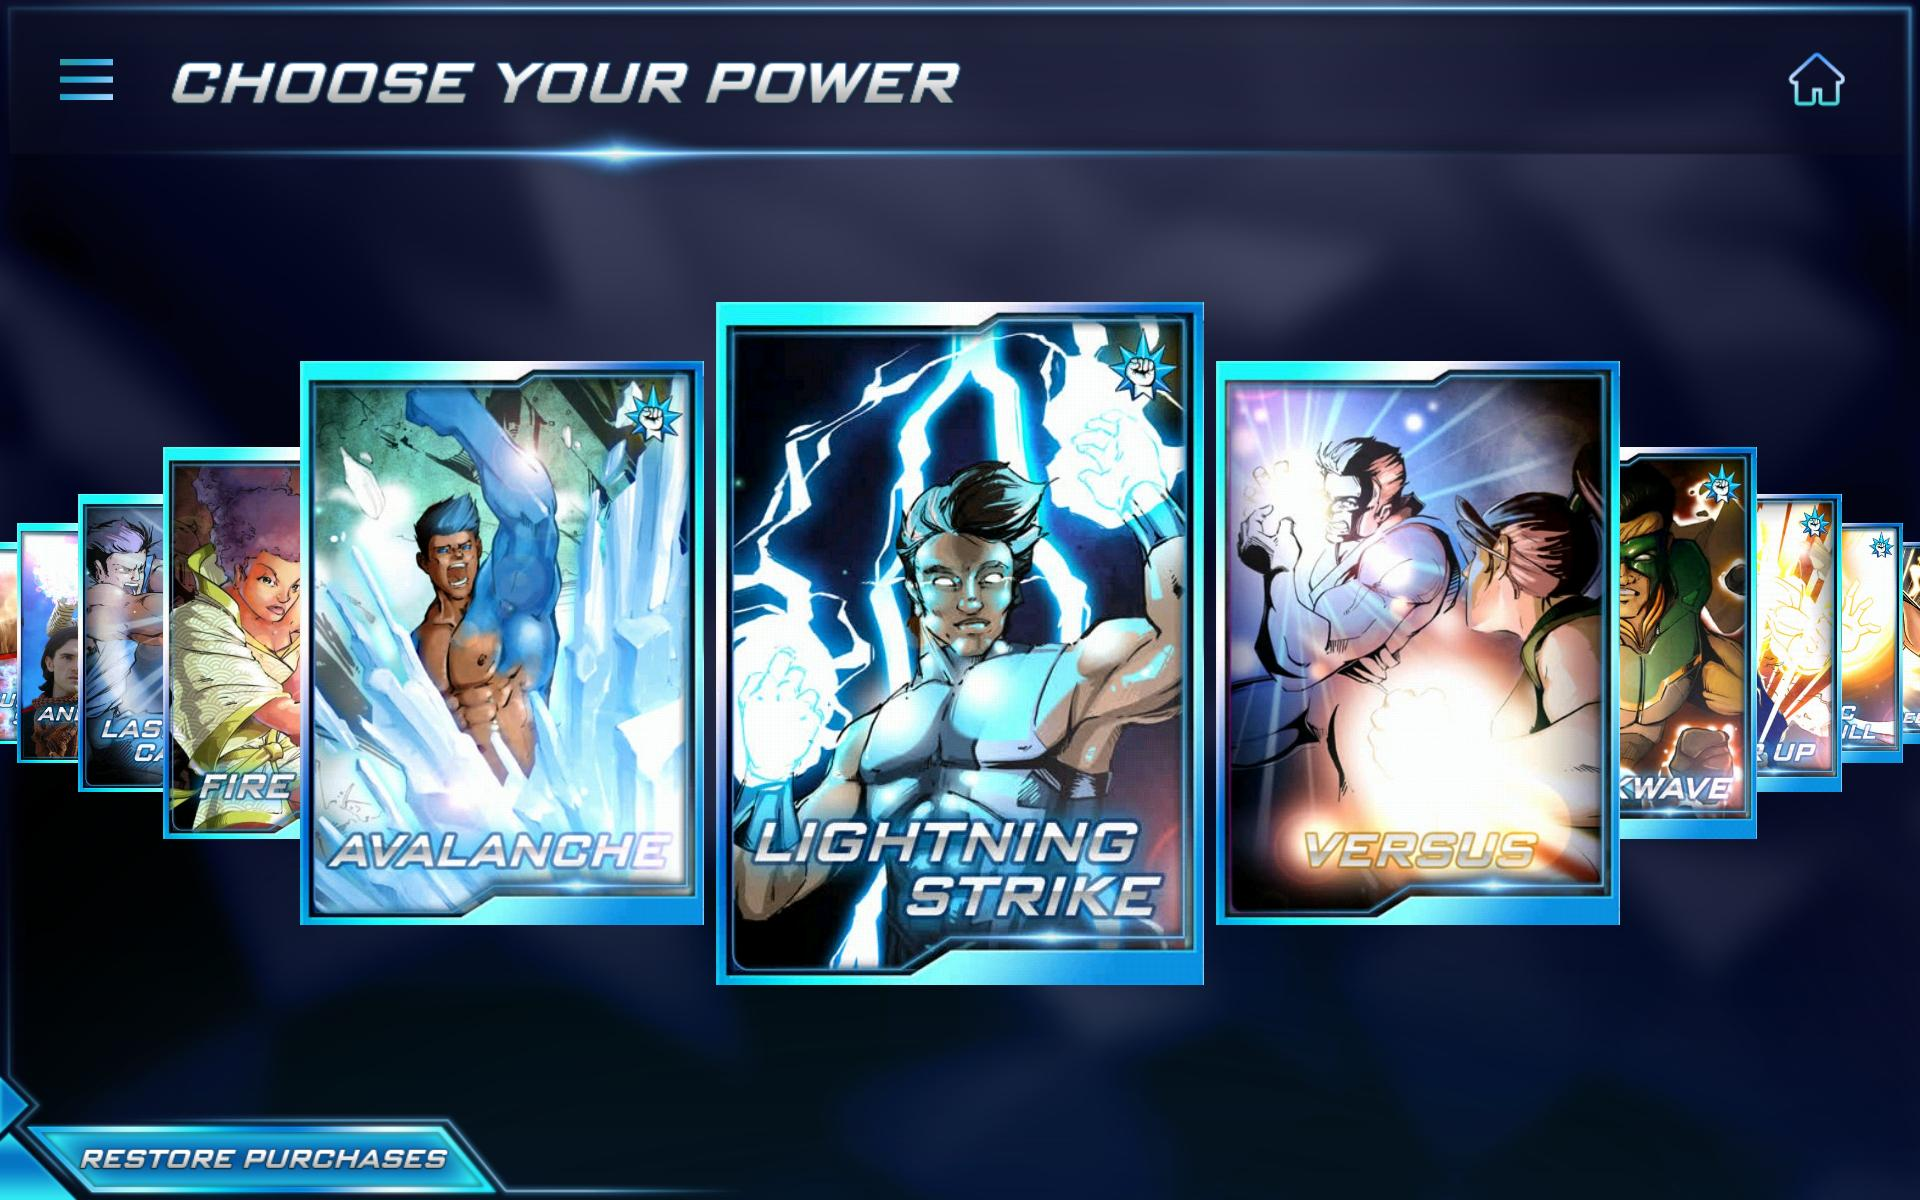 Super Power FX - Be a Superhero! for Android - APK Download